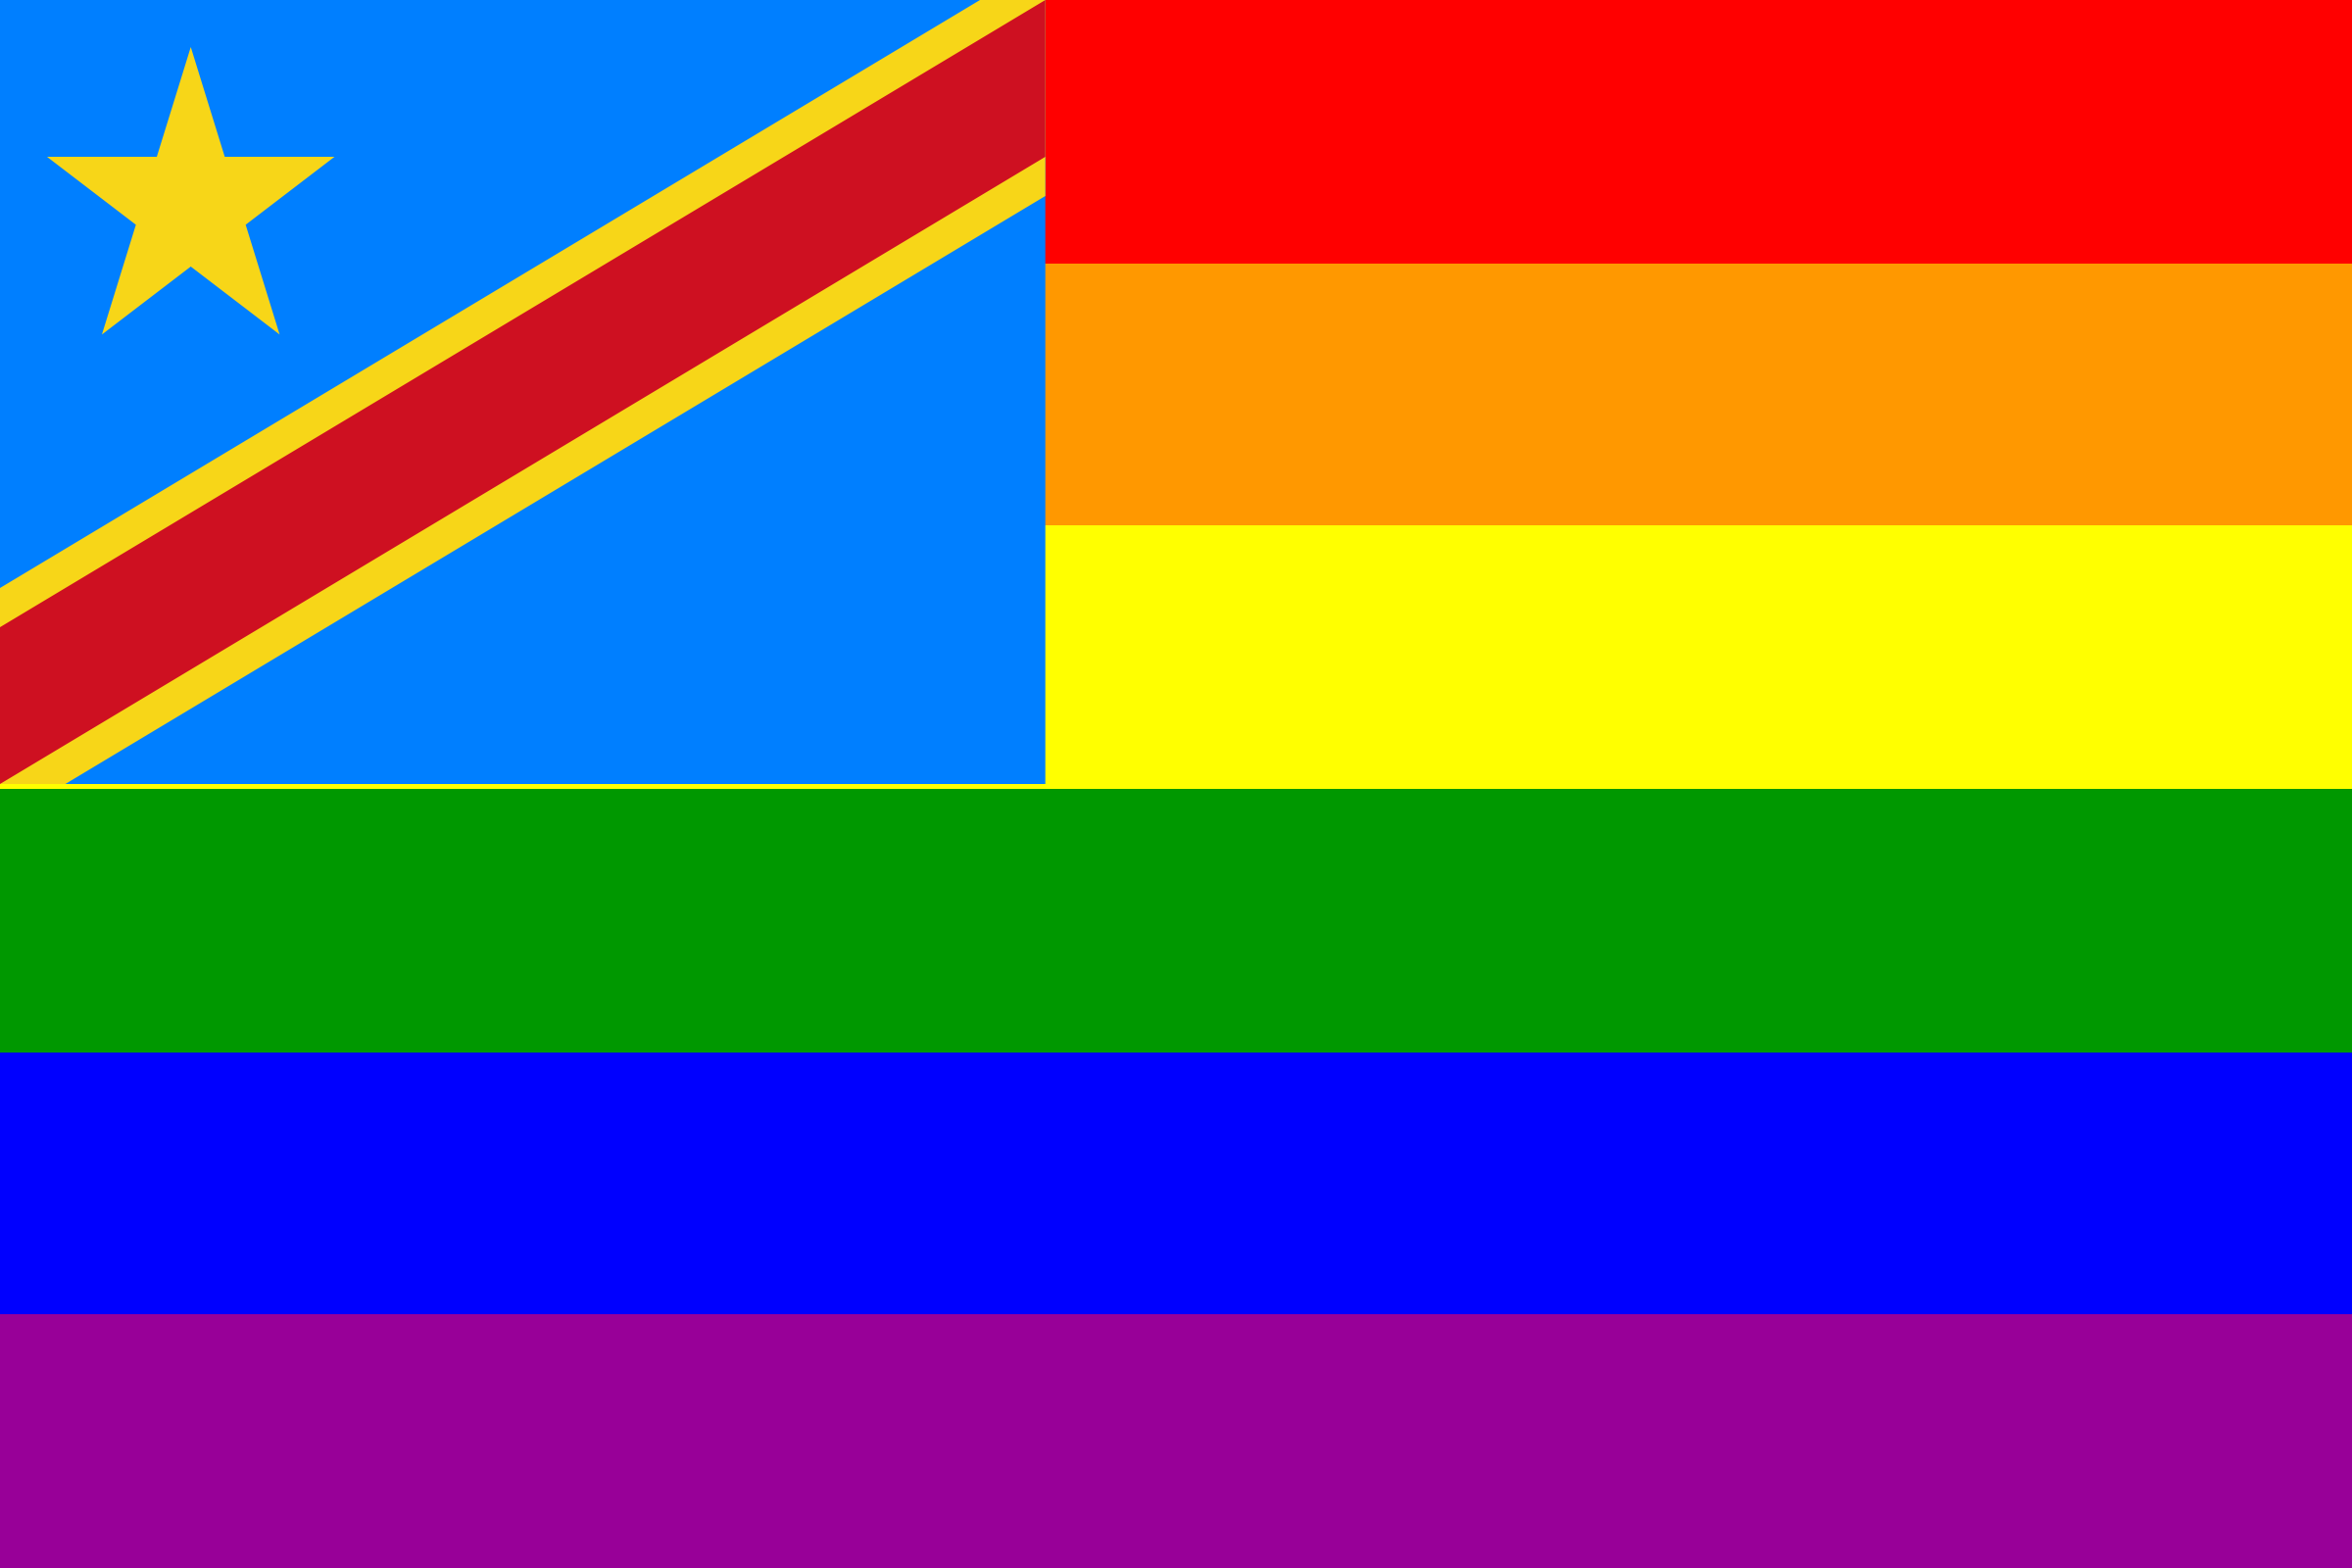 The Democratic Republic of the Congo Rainbow Flag by AdamStanislav